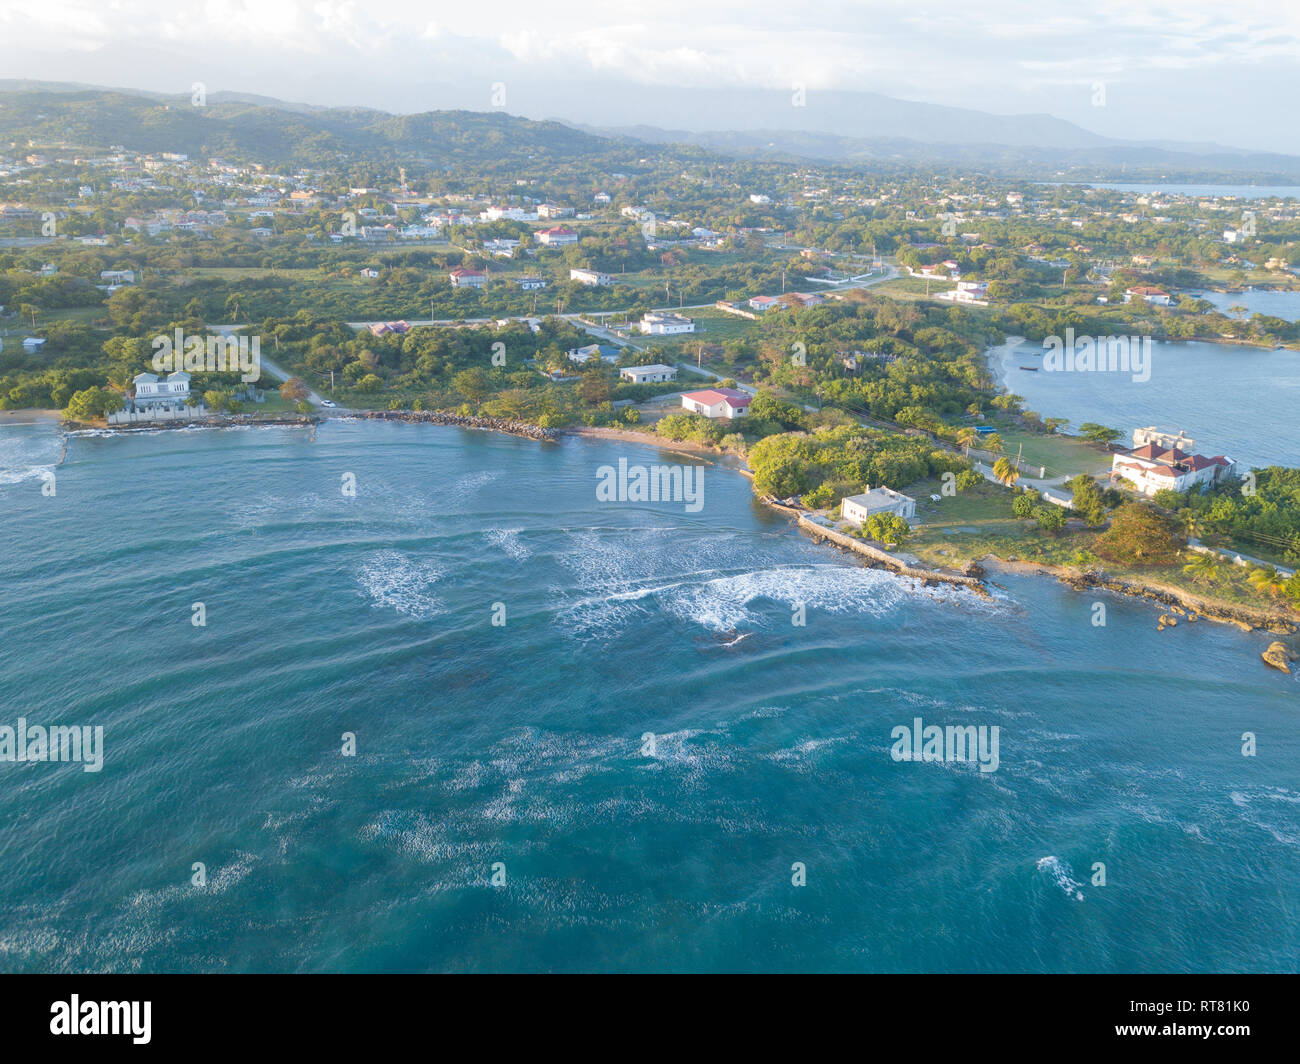 Aerial Drone shot of Jamaica, showing the Caribbean sea, houses and mountain - Stock Image